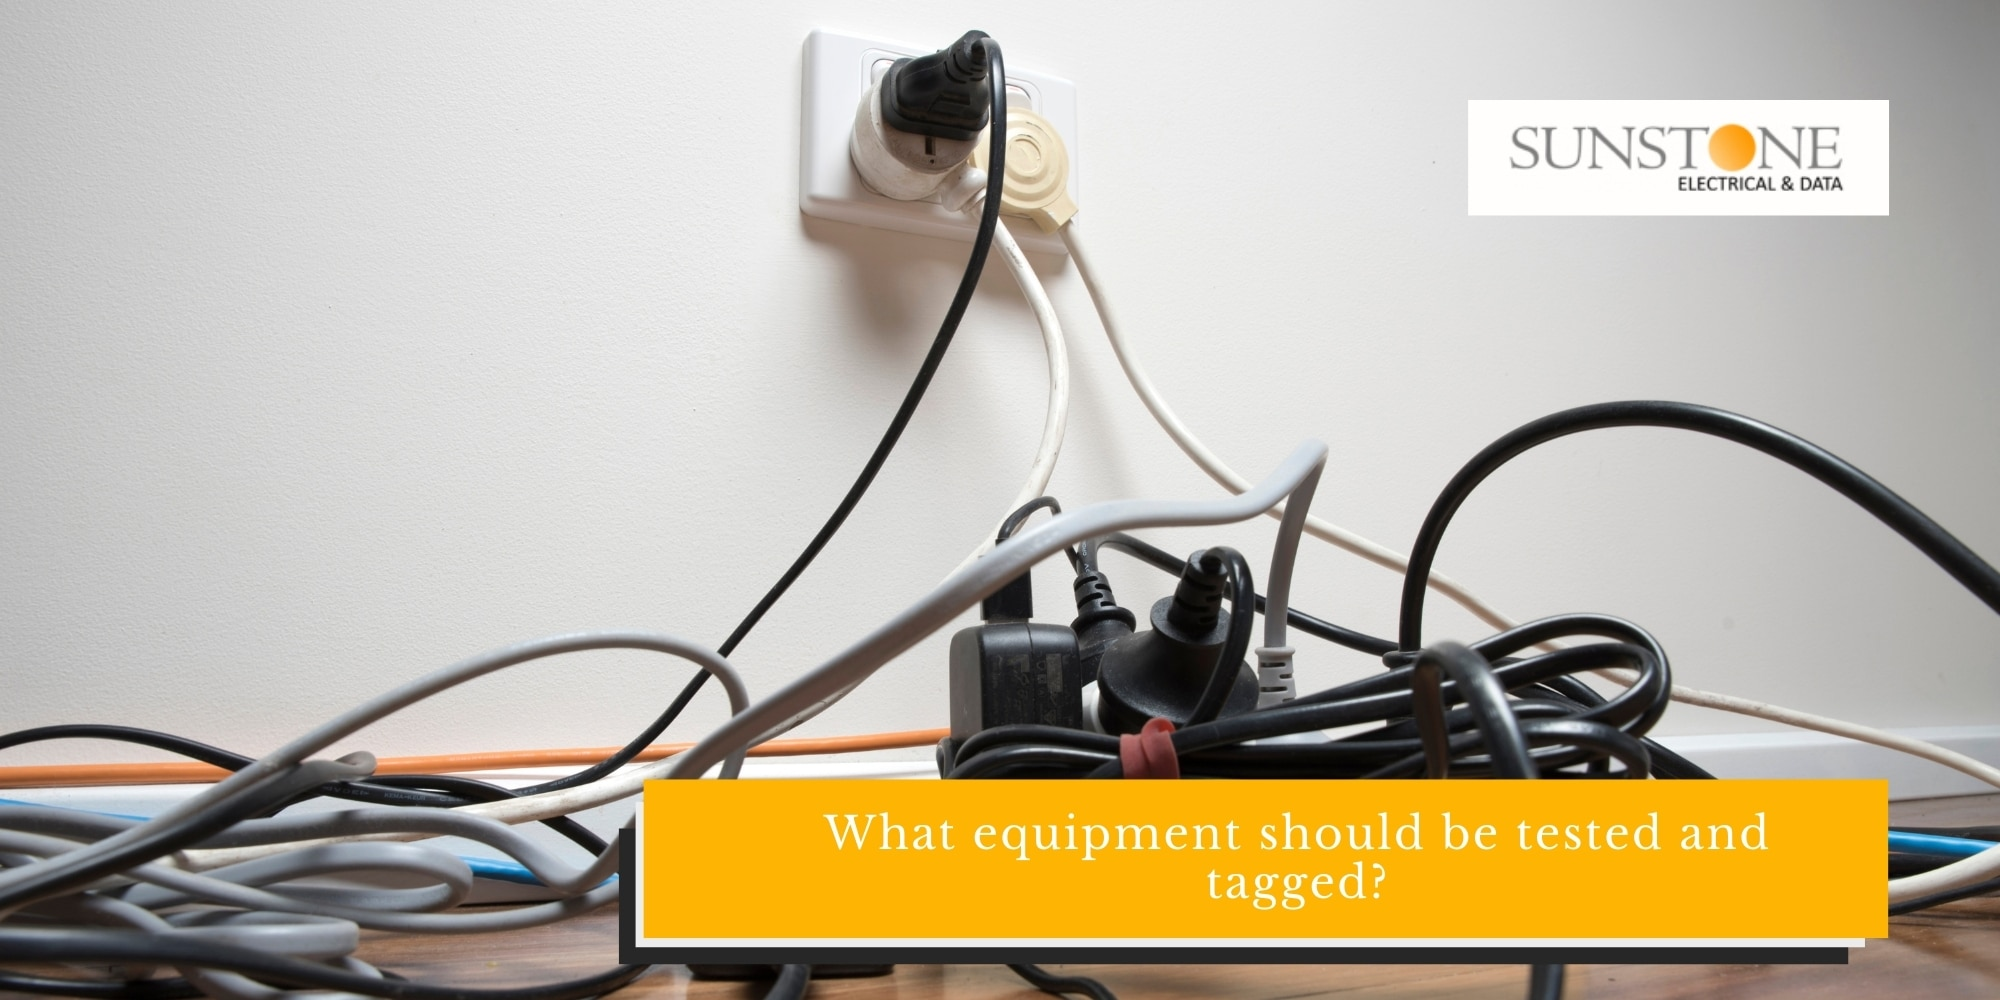 What equipment should be tested and tagged?